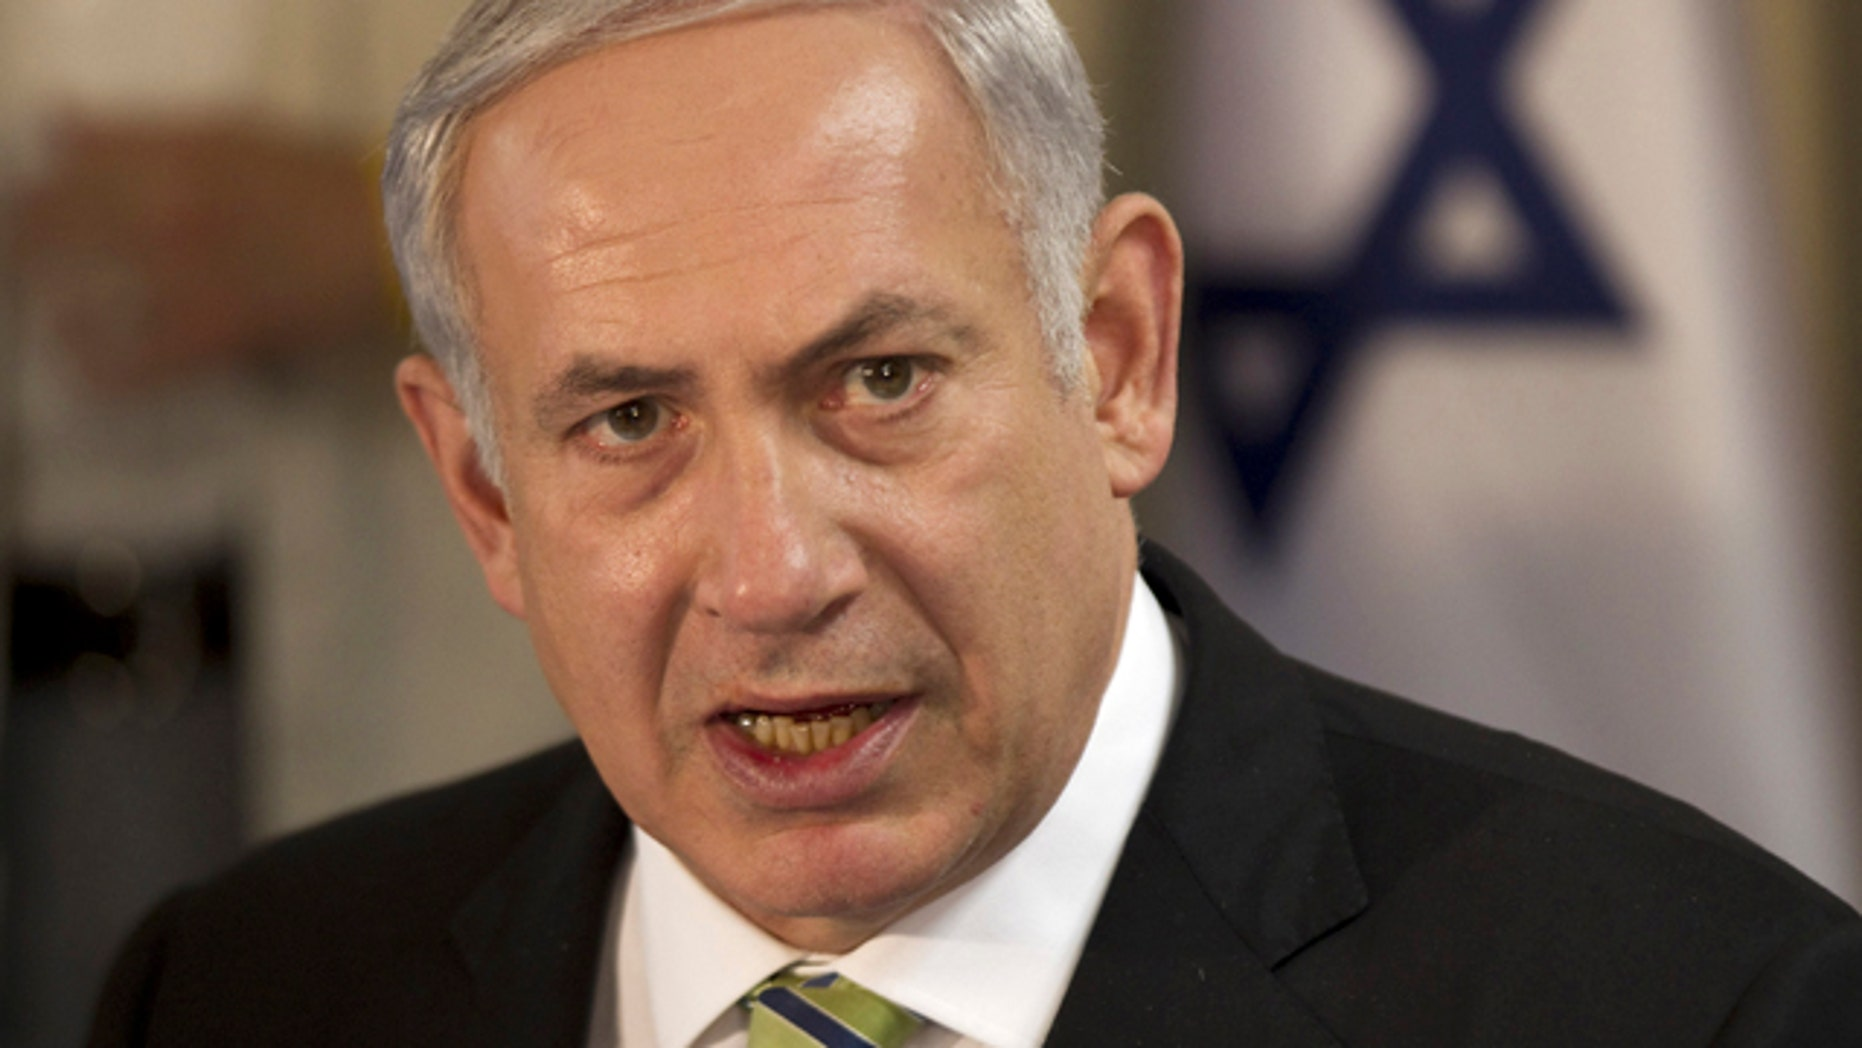 Oct. 30, 2011: Israeli Prime Minister Benjamin Netanyahu heads the weekly cabinet meeting convening in Safed, northern Israel.